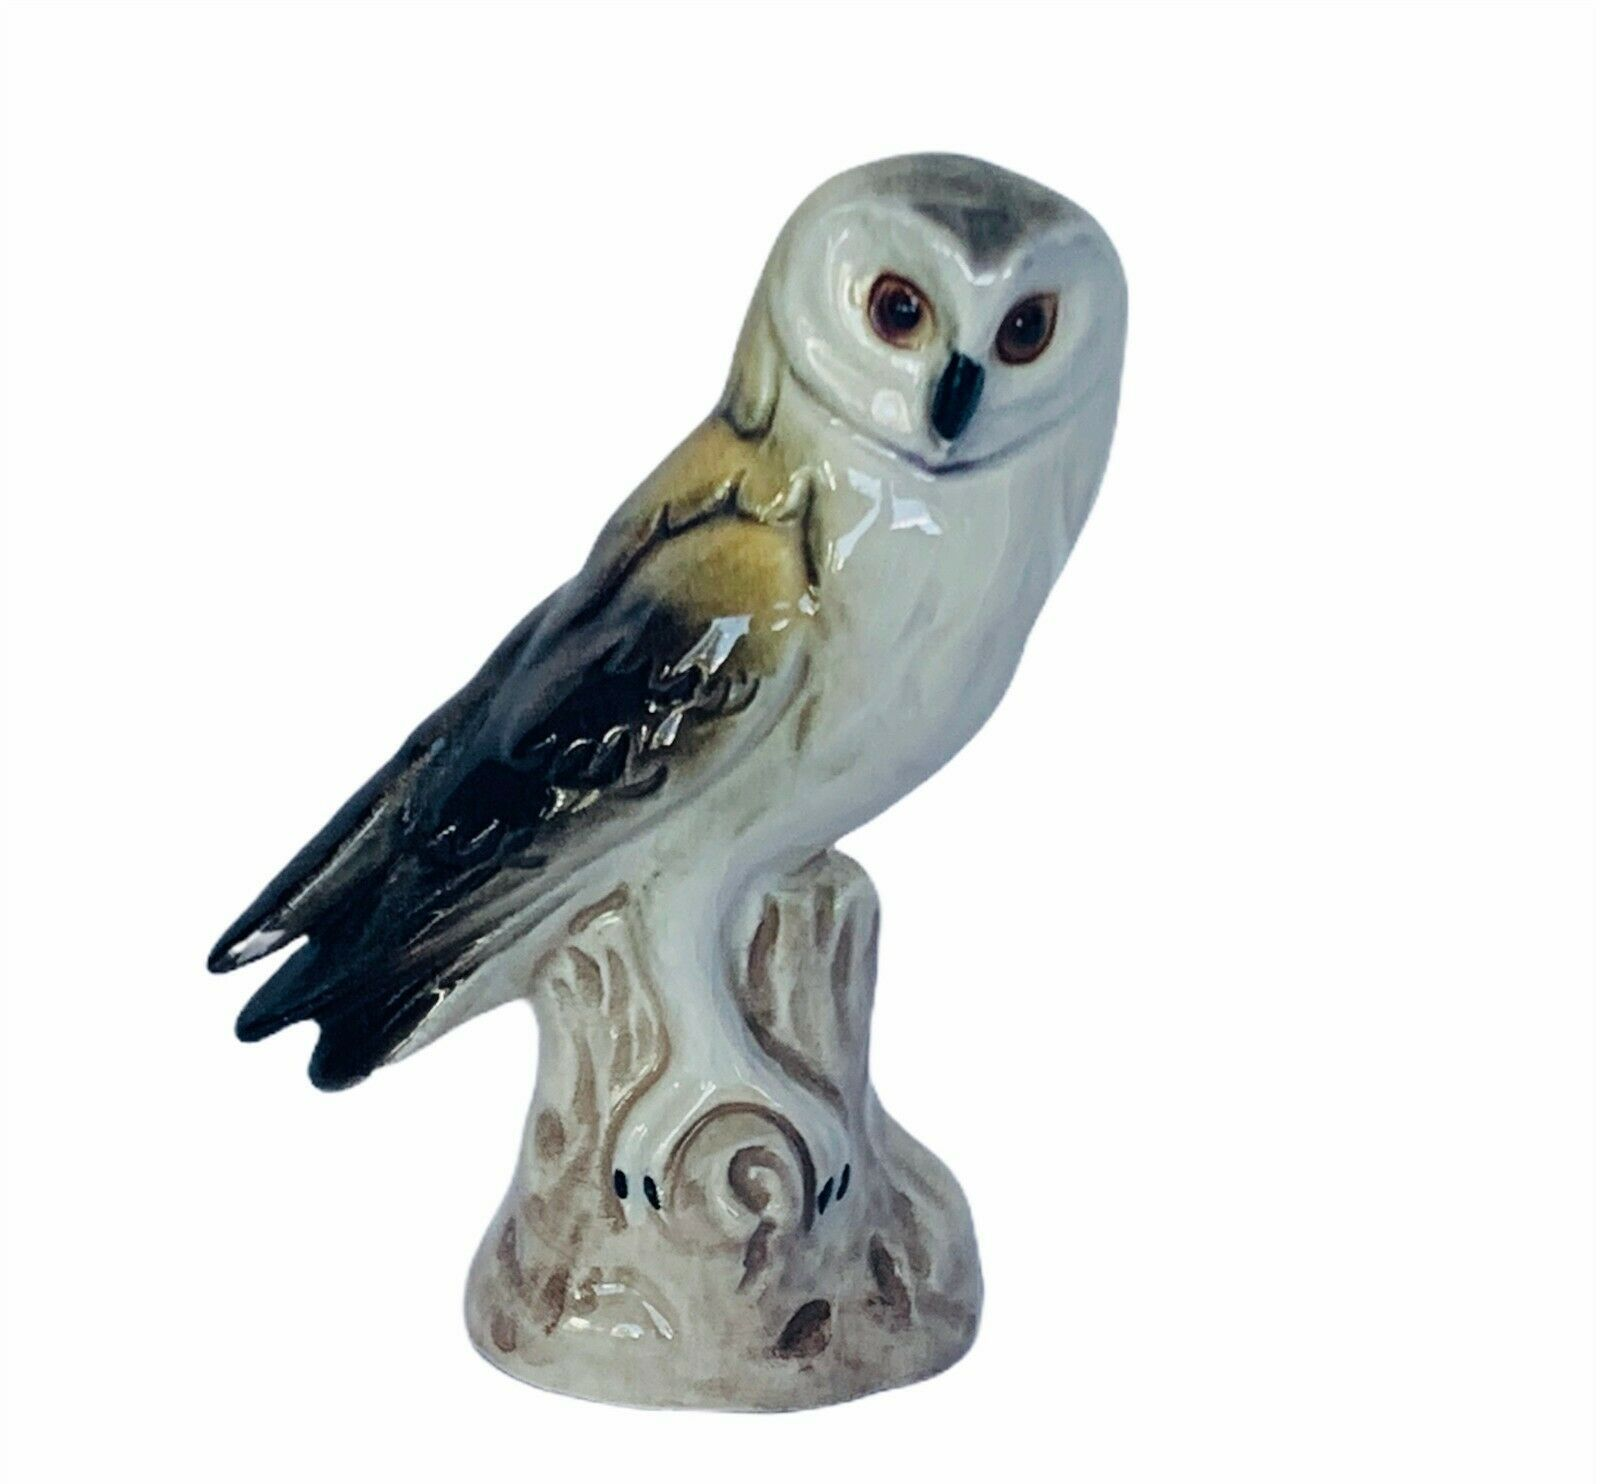 Primary image for Owl figurine vtg sculpture Goebel Hummel Western Germany 38313 perch great horn